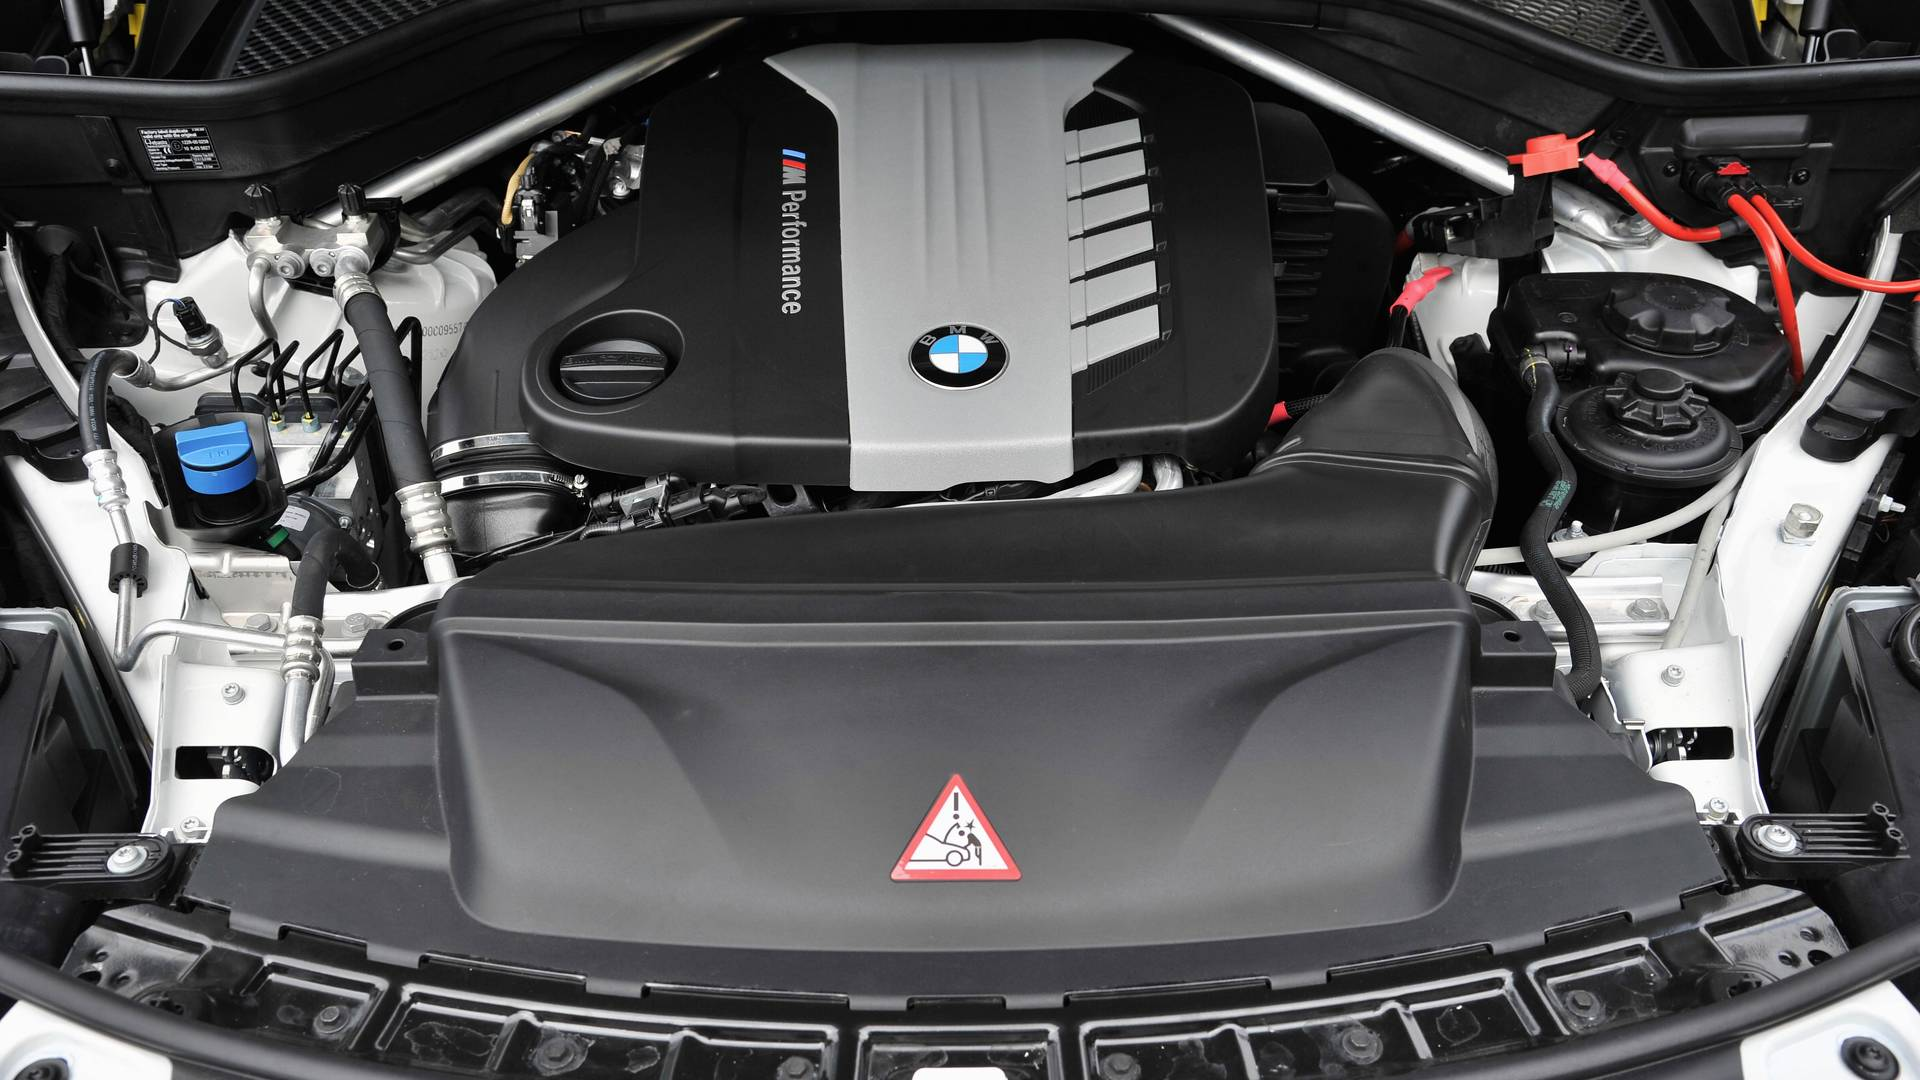 2018 Bmw X5 Gets Diesel Engines And New Design >> Bmw Could Phase Out The Quad Turbo M50d Diesel In 2020